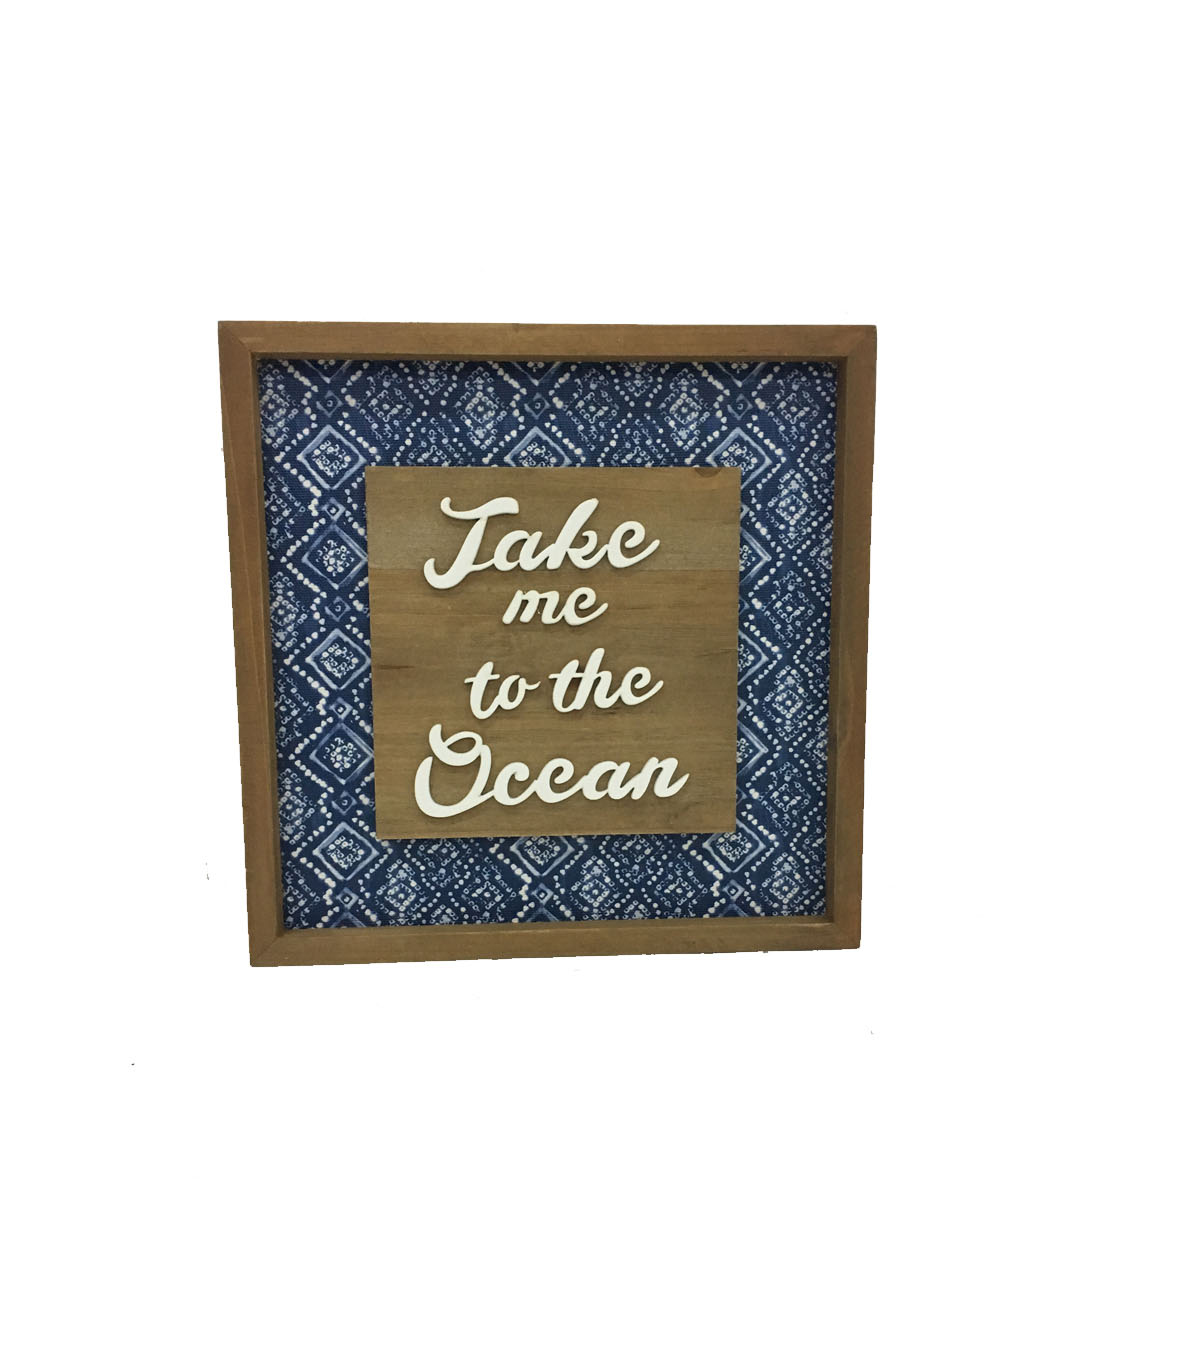 Indigo Mist Fabric Wall Decor-Take me to the Ocean